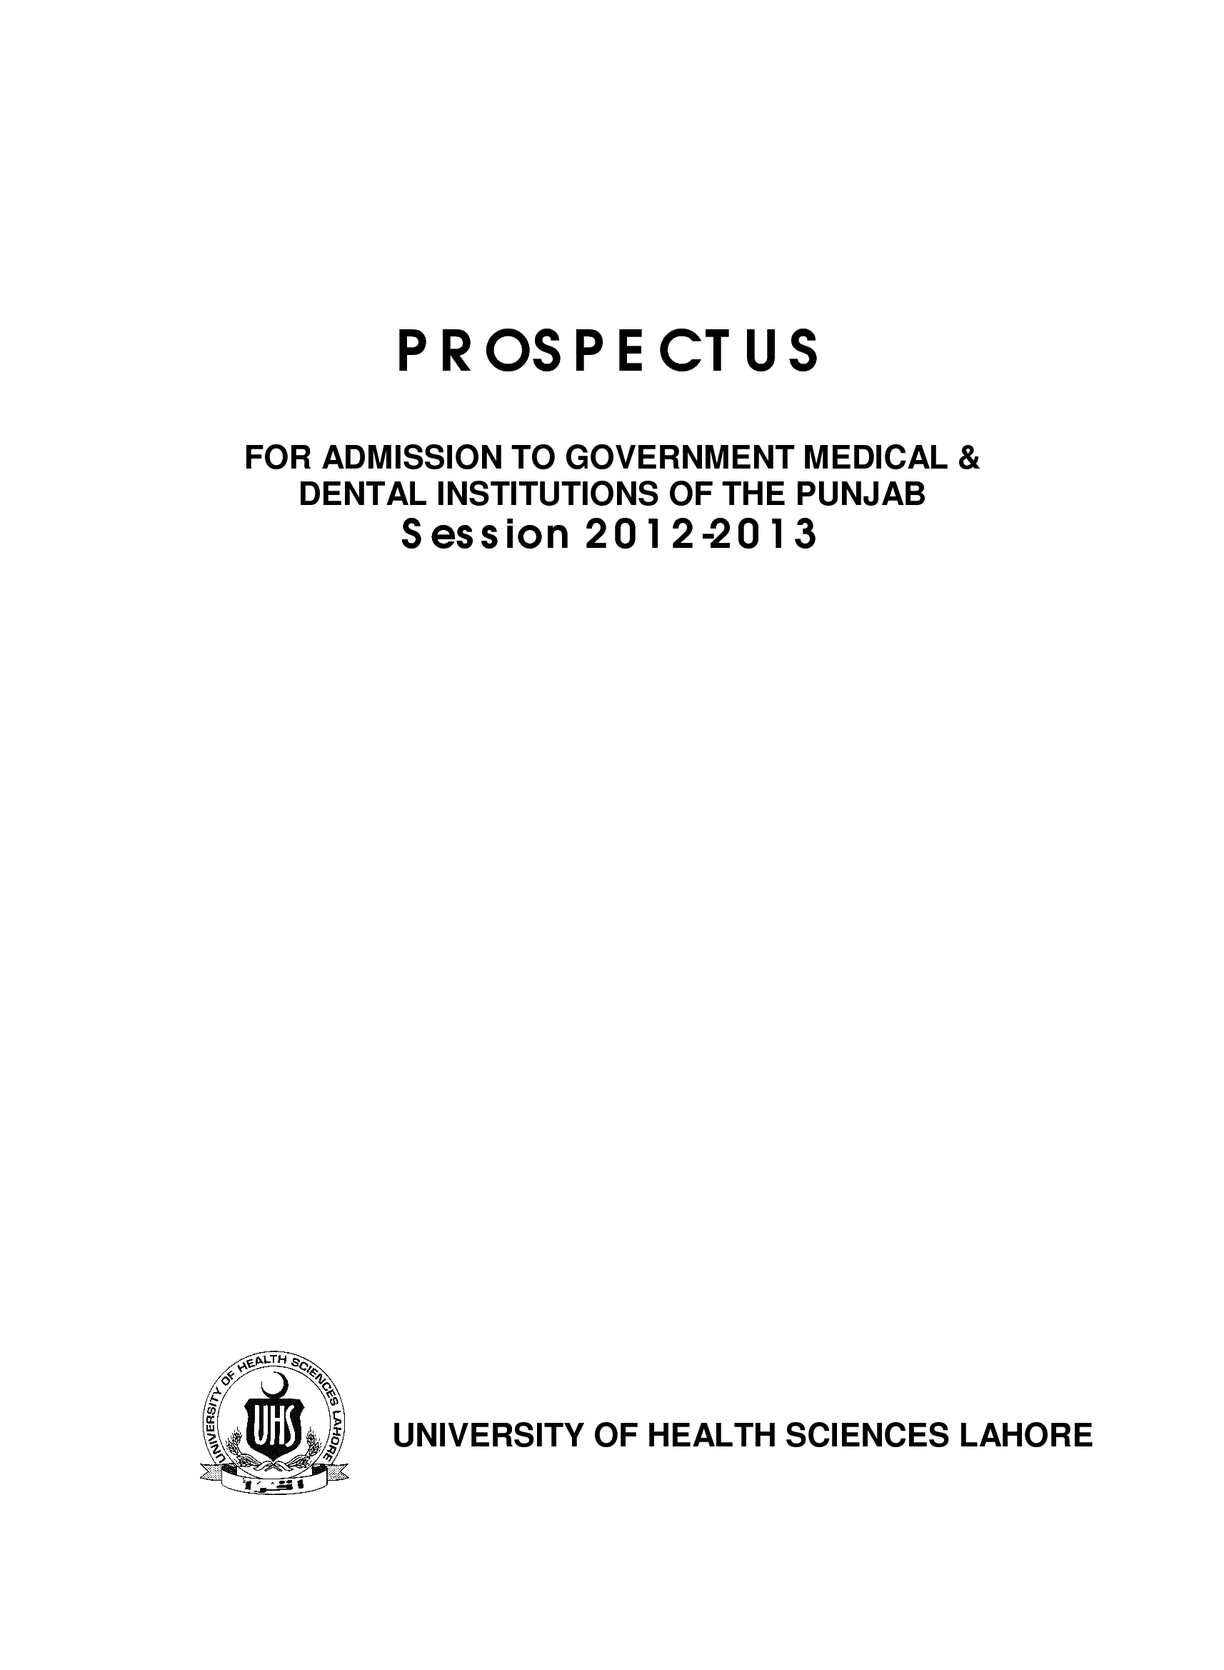 Calaméo - PROSPECTUS (For Admission to Government Medical & Dental ...